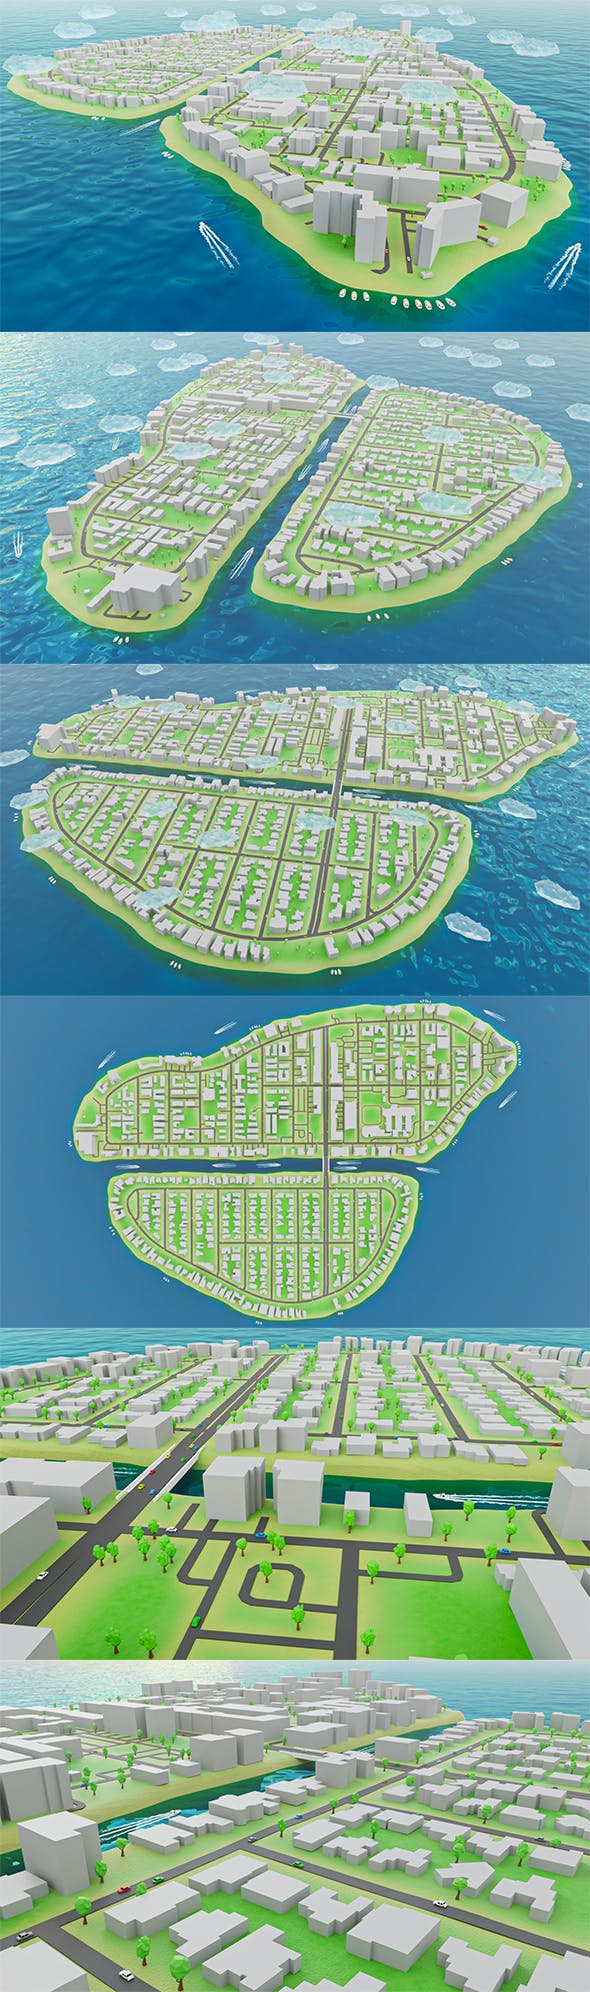 Miami - Bay Harbor Islands - Real Copy Low-poly 3D model - 3DOcean Item for Sale